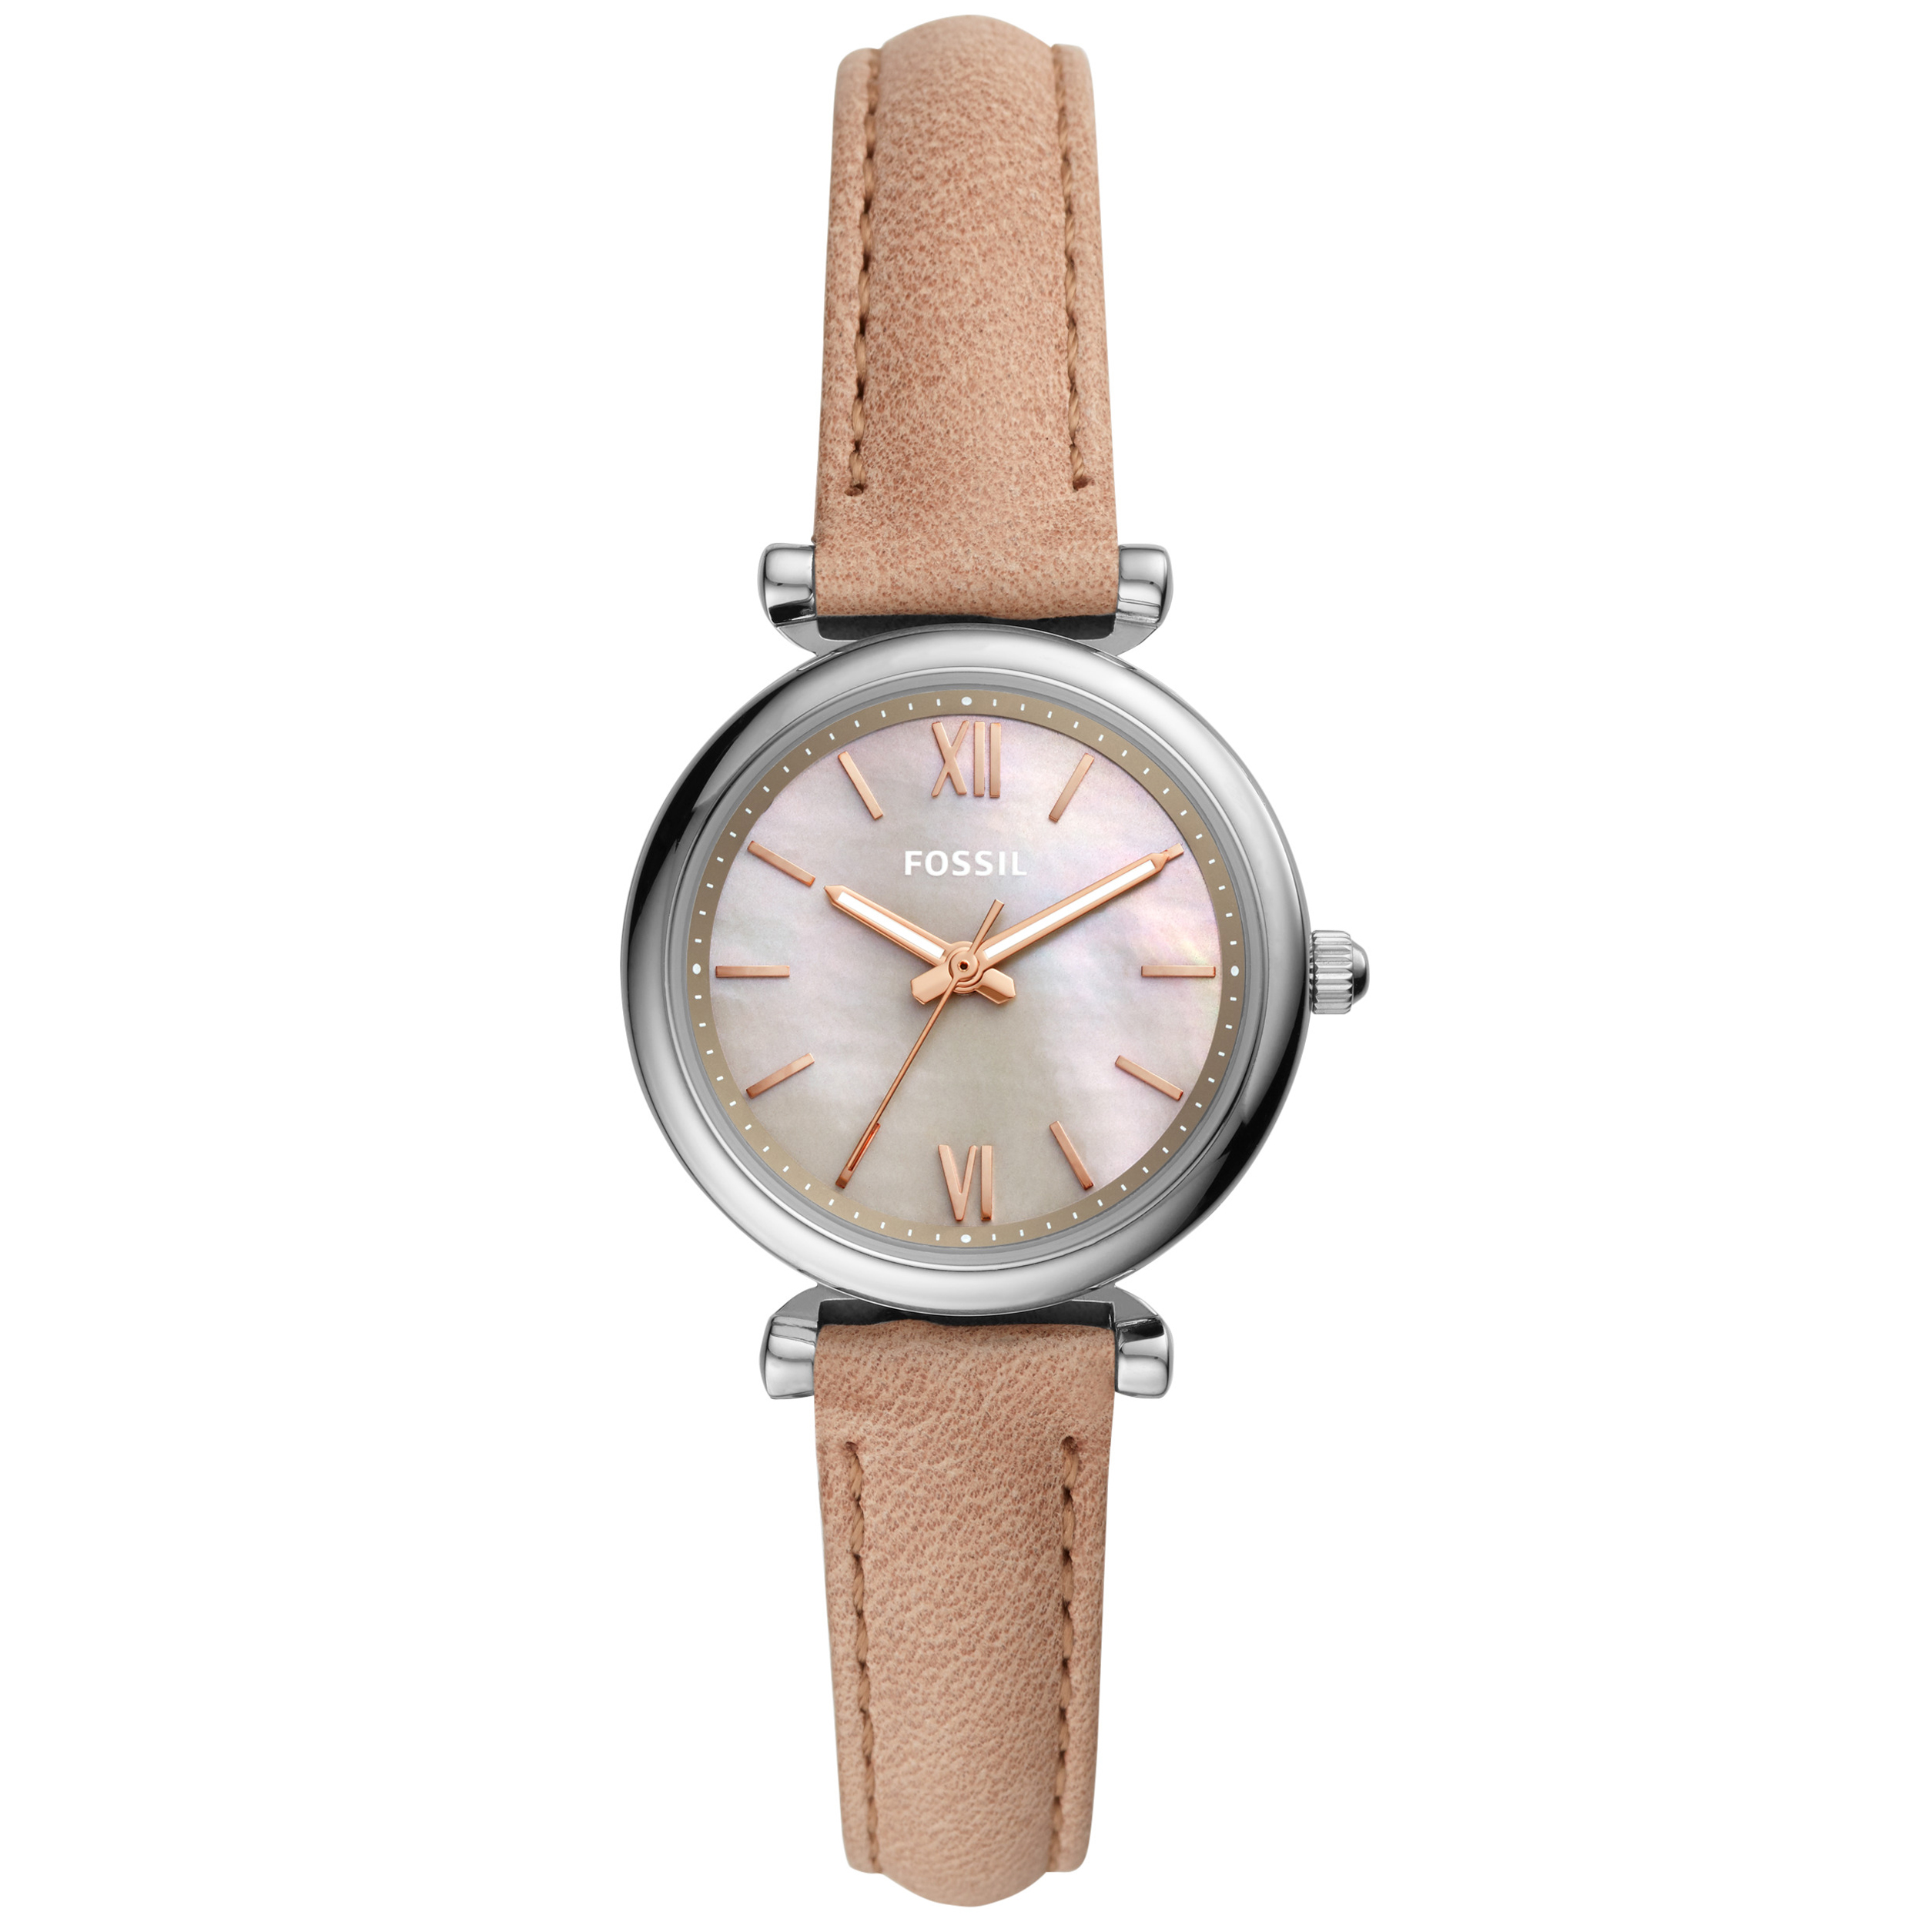 Fossil Carlie Mini Three Hand Sand Leather watch